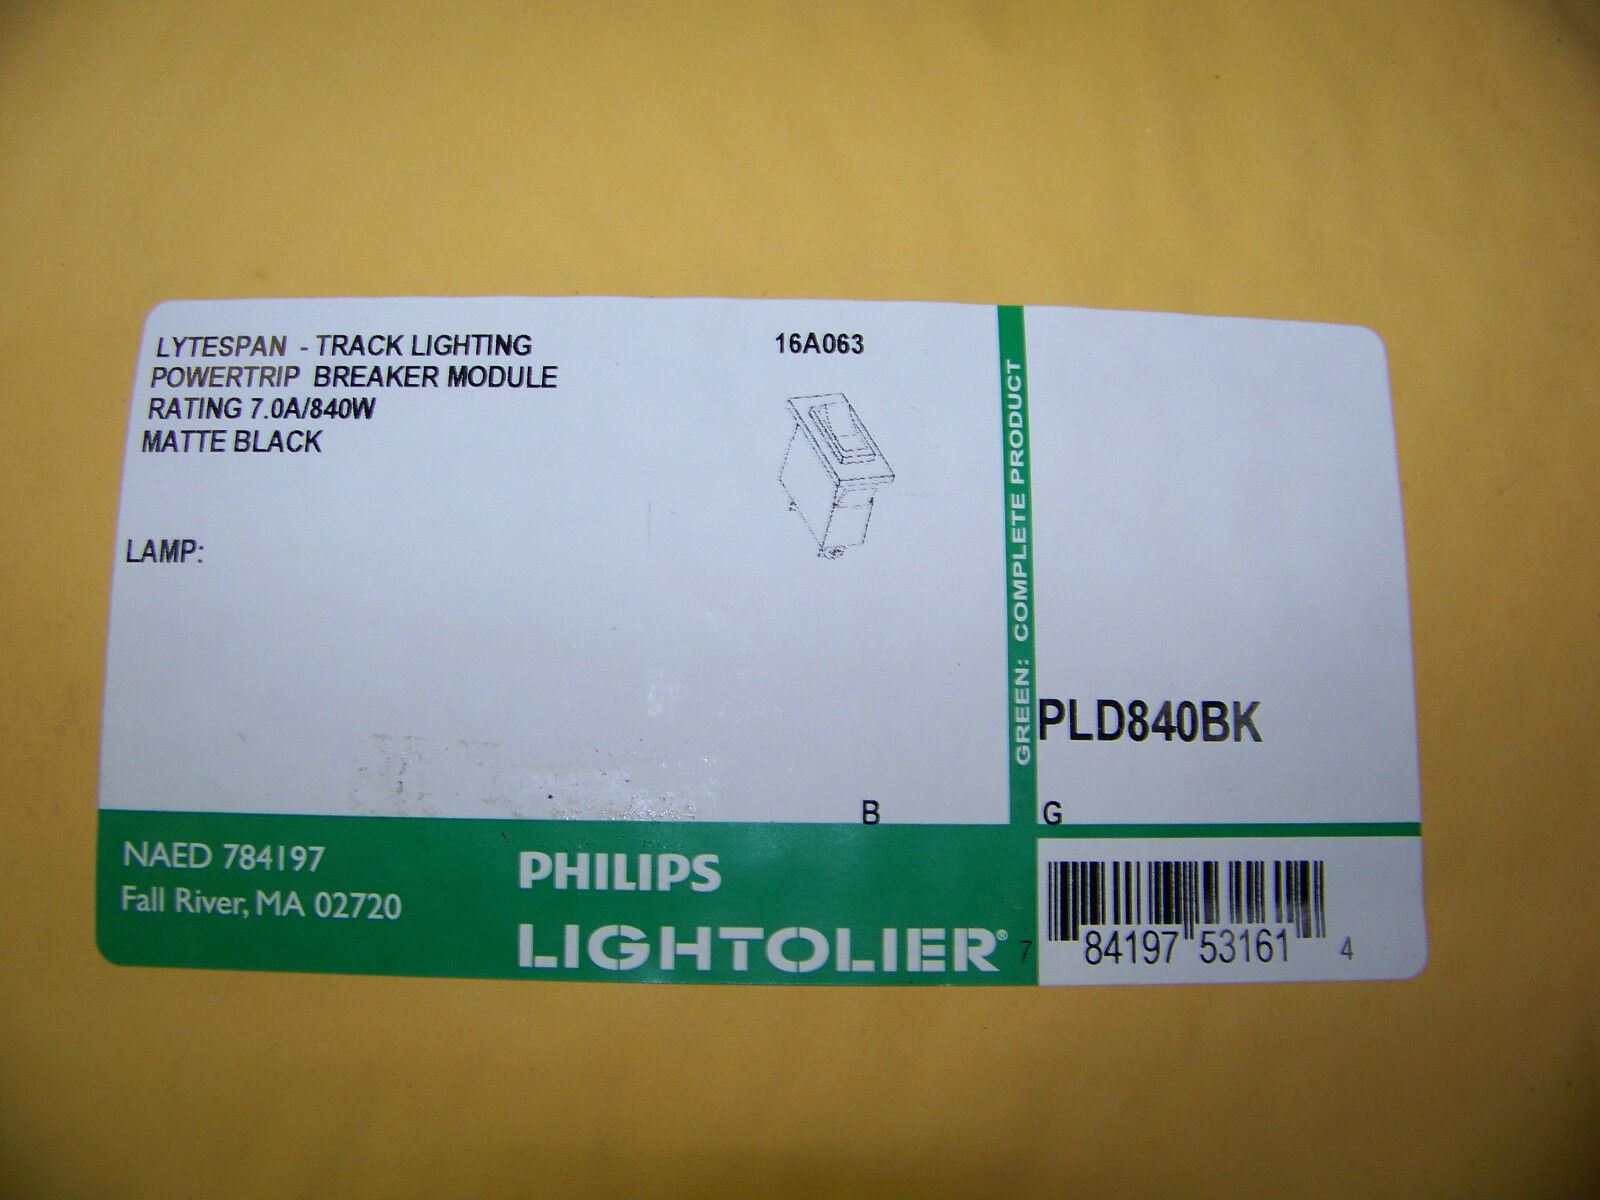 Philips lightolier lytespan track lighting powerstrip breaker picture 1 of 2 mozeypictures Image collections